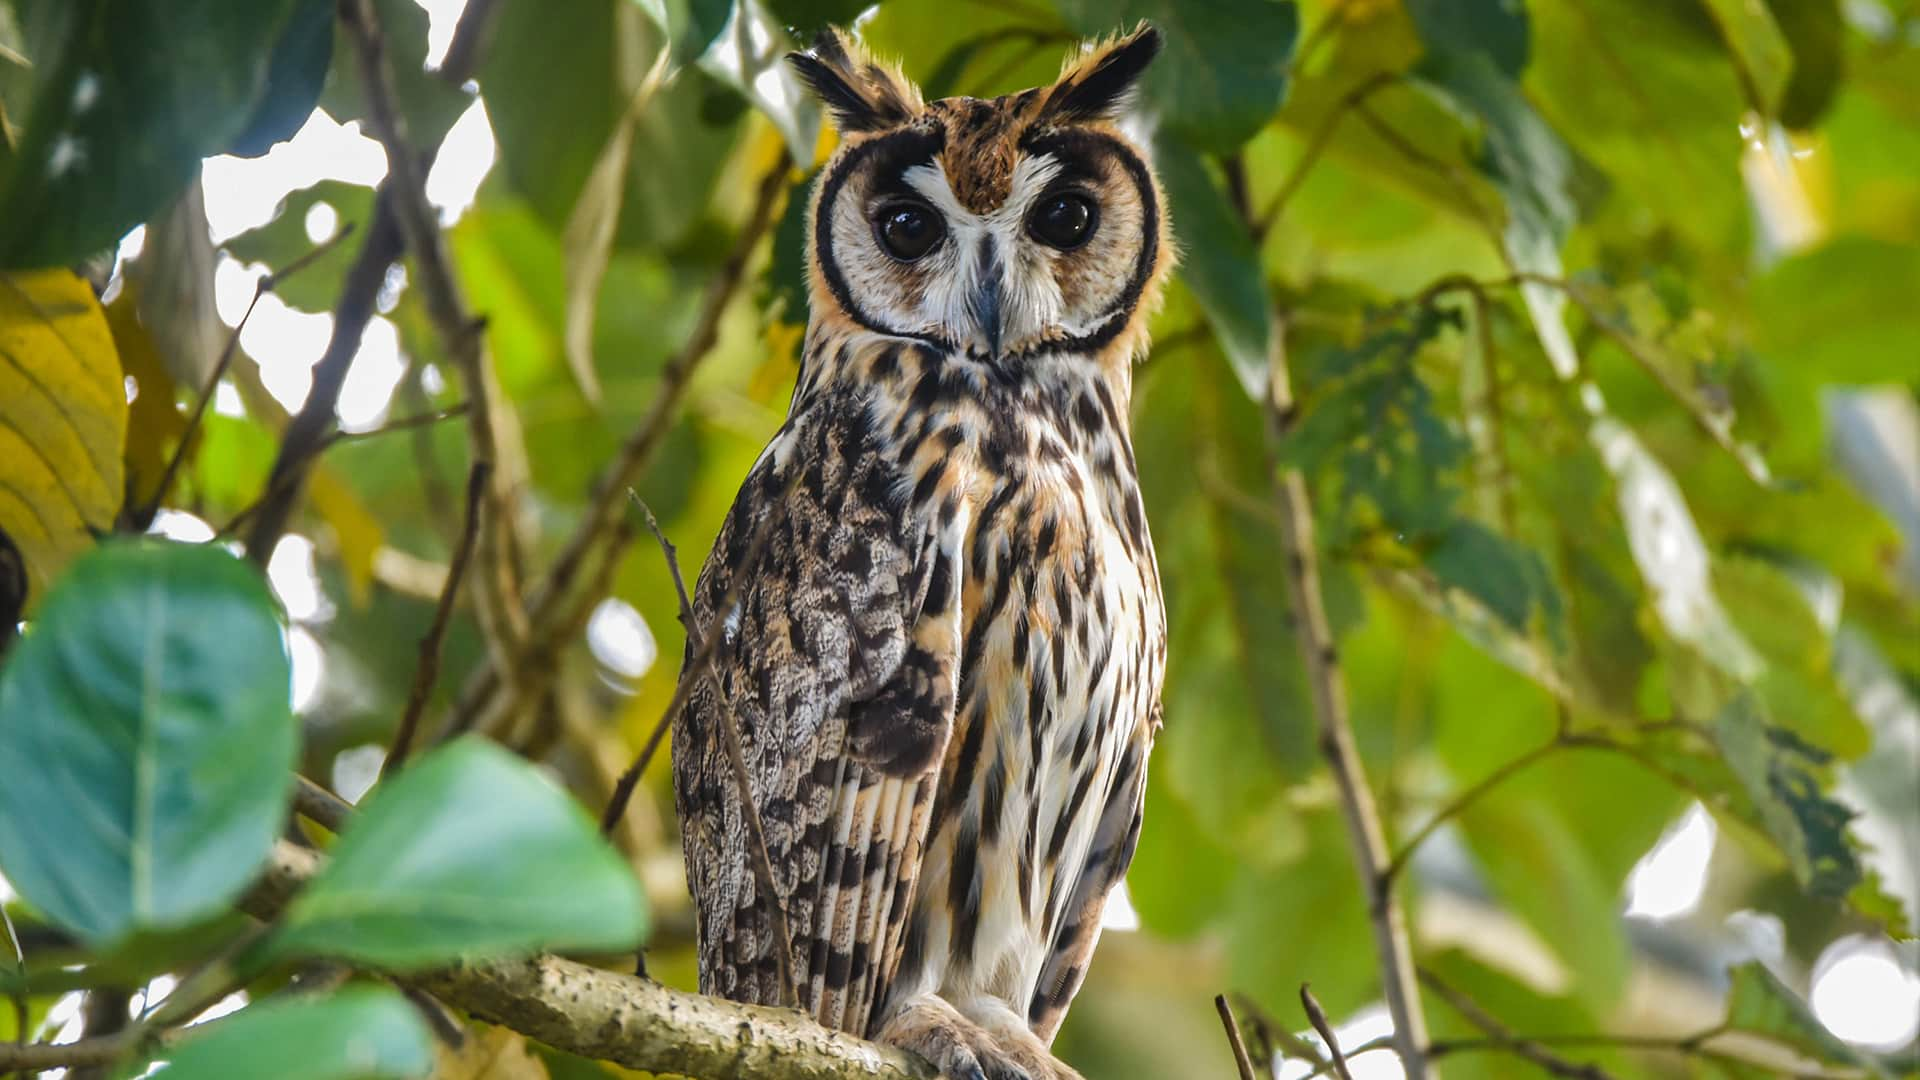 11Owl standing in a brach during the day   Responsible Travel Peru